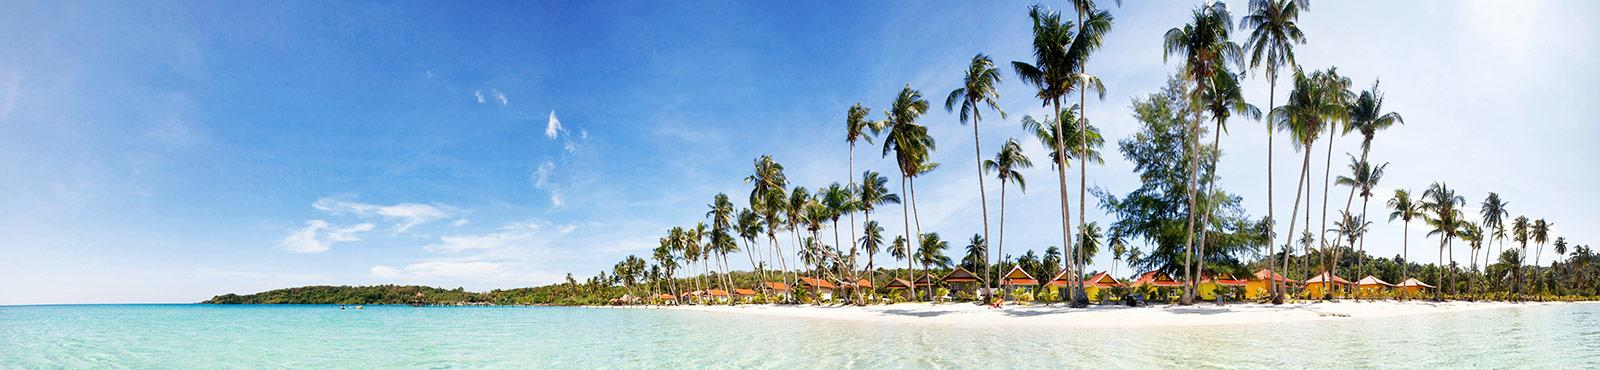 Best Beaches in the Caribbean Marquee